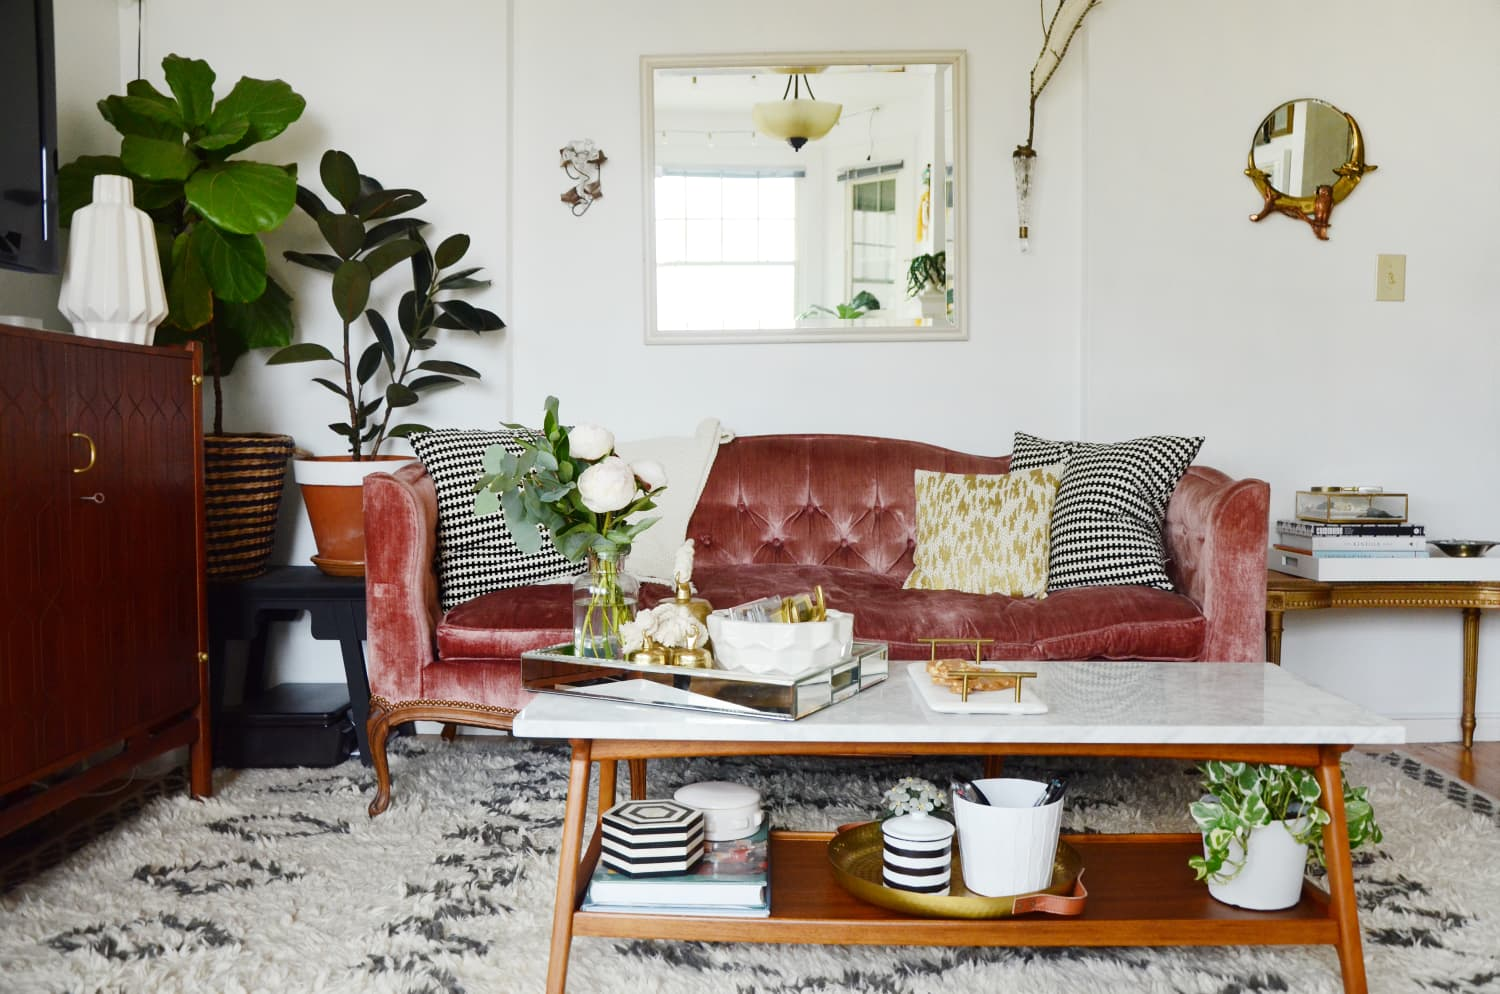 The Best Decorating Ideas to Cozy Up Your Home, According to Design Pros